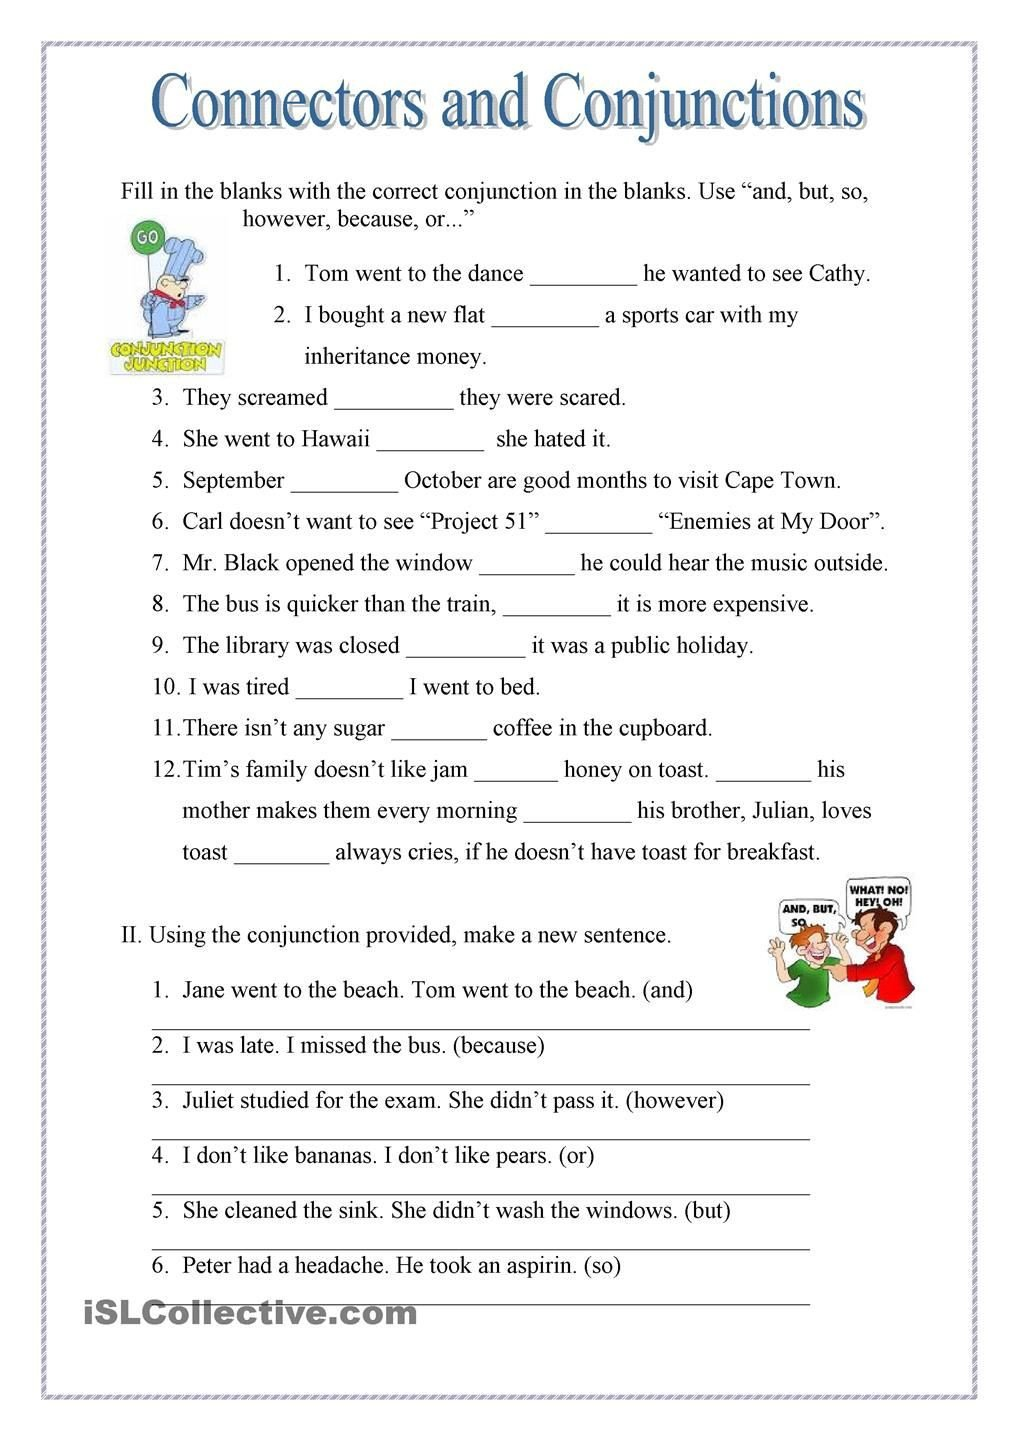 Conjunctions Worksheets for Grade 3 Conjuctions and Connectors